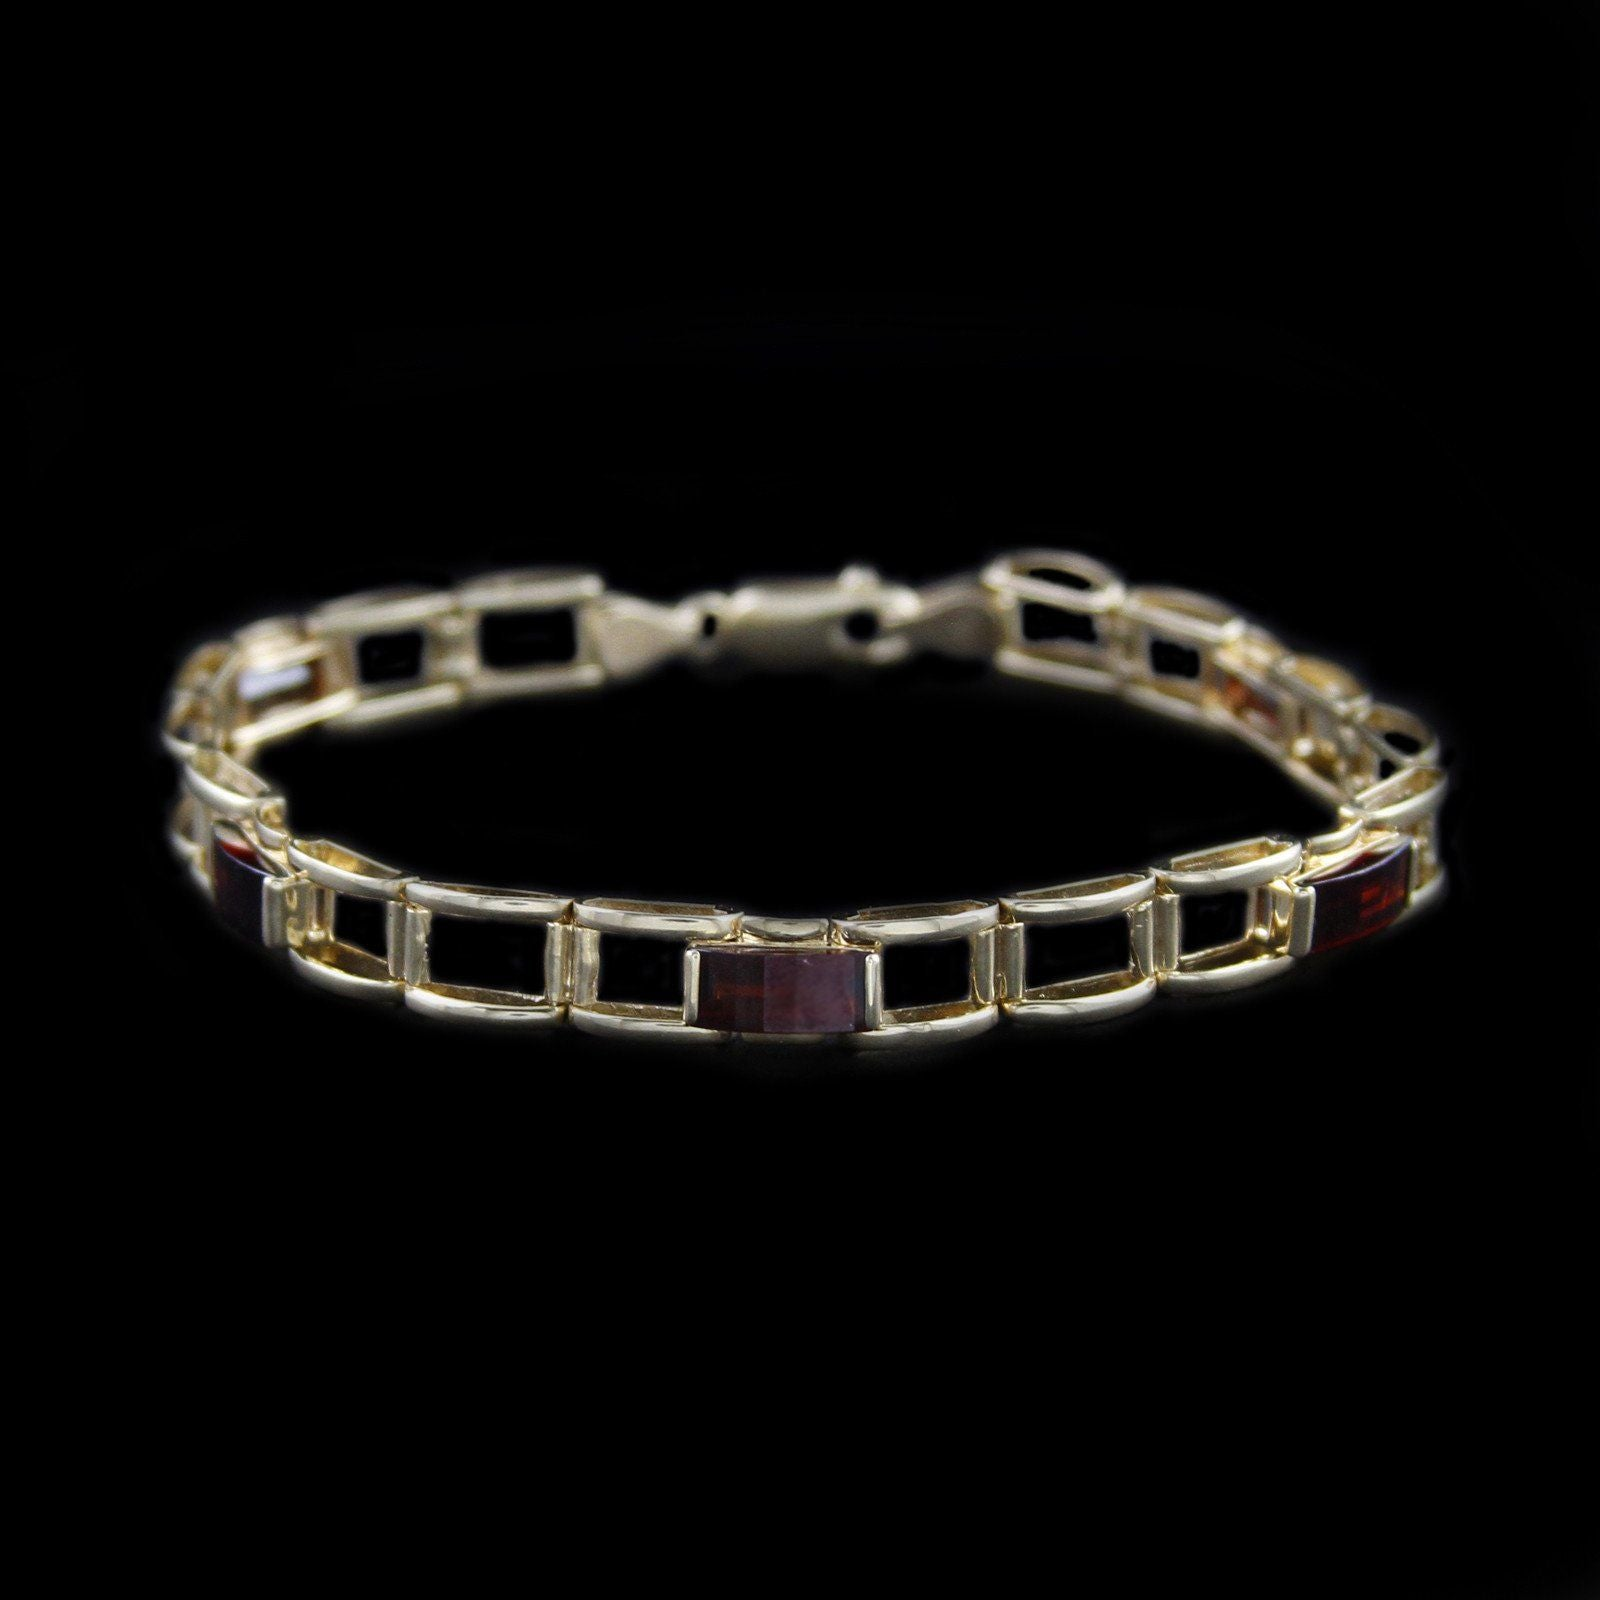 Beautiful Garnet Bracelet with Open Square Design Links in 14K Yellow Gold